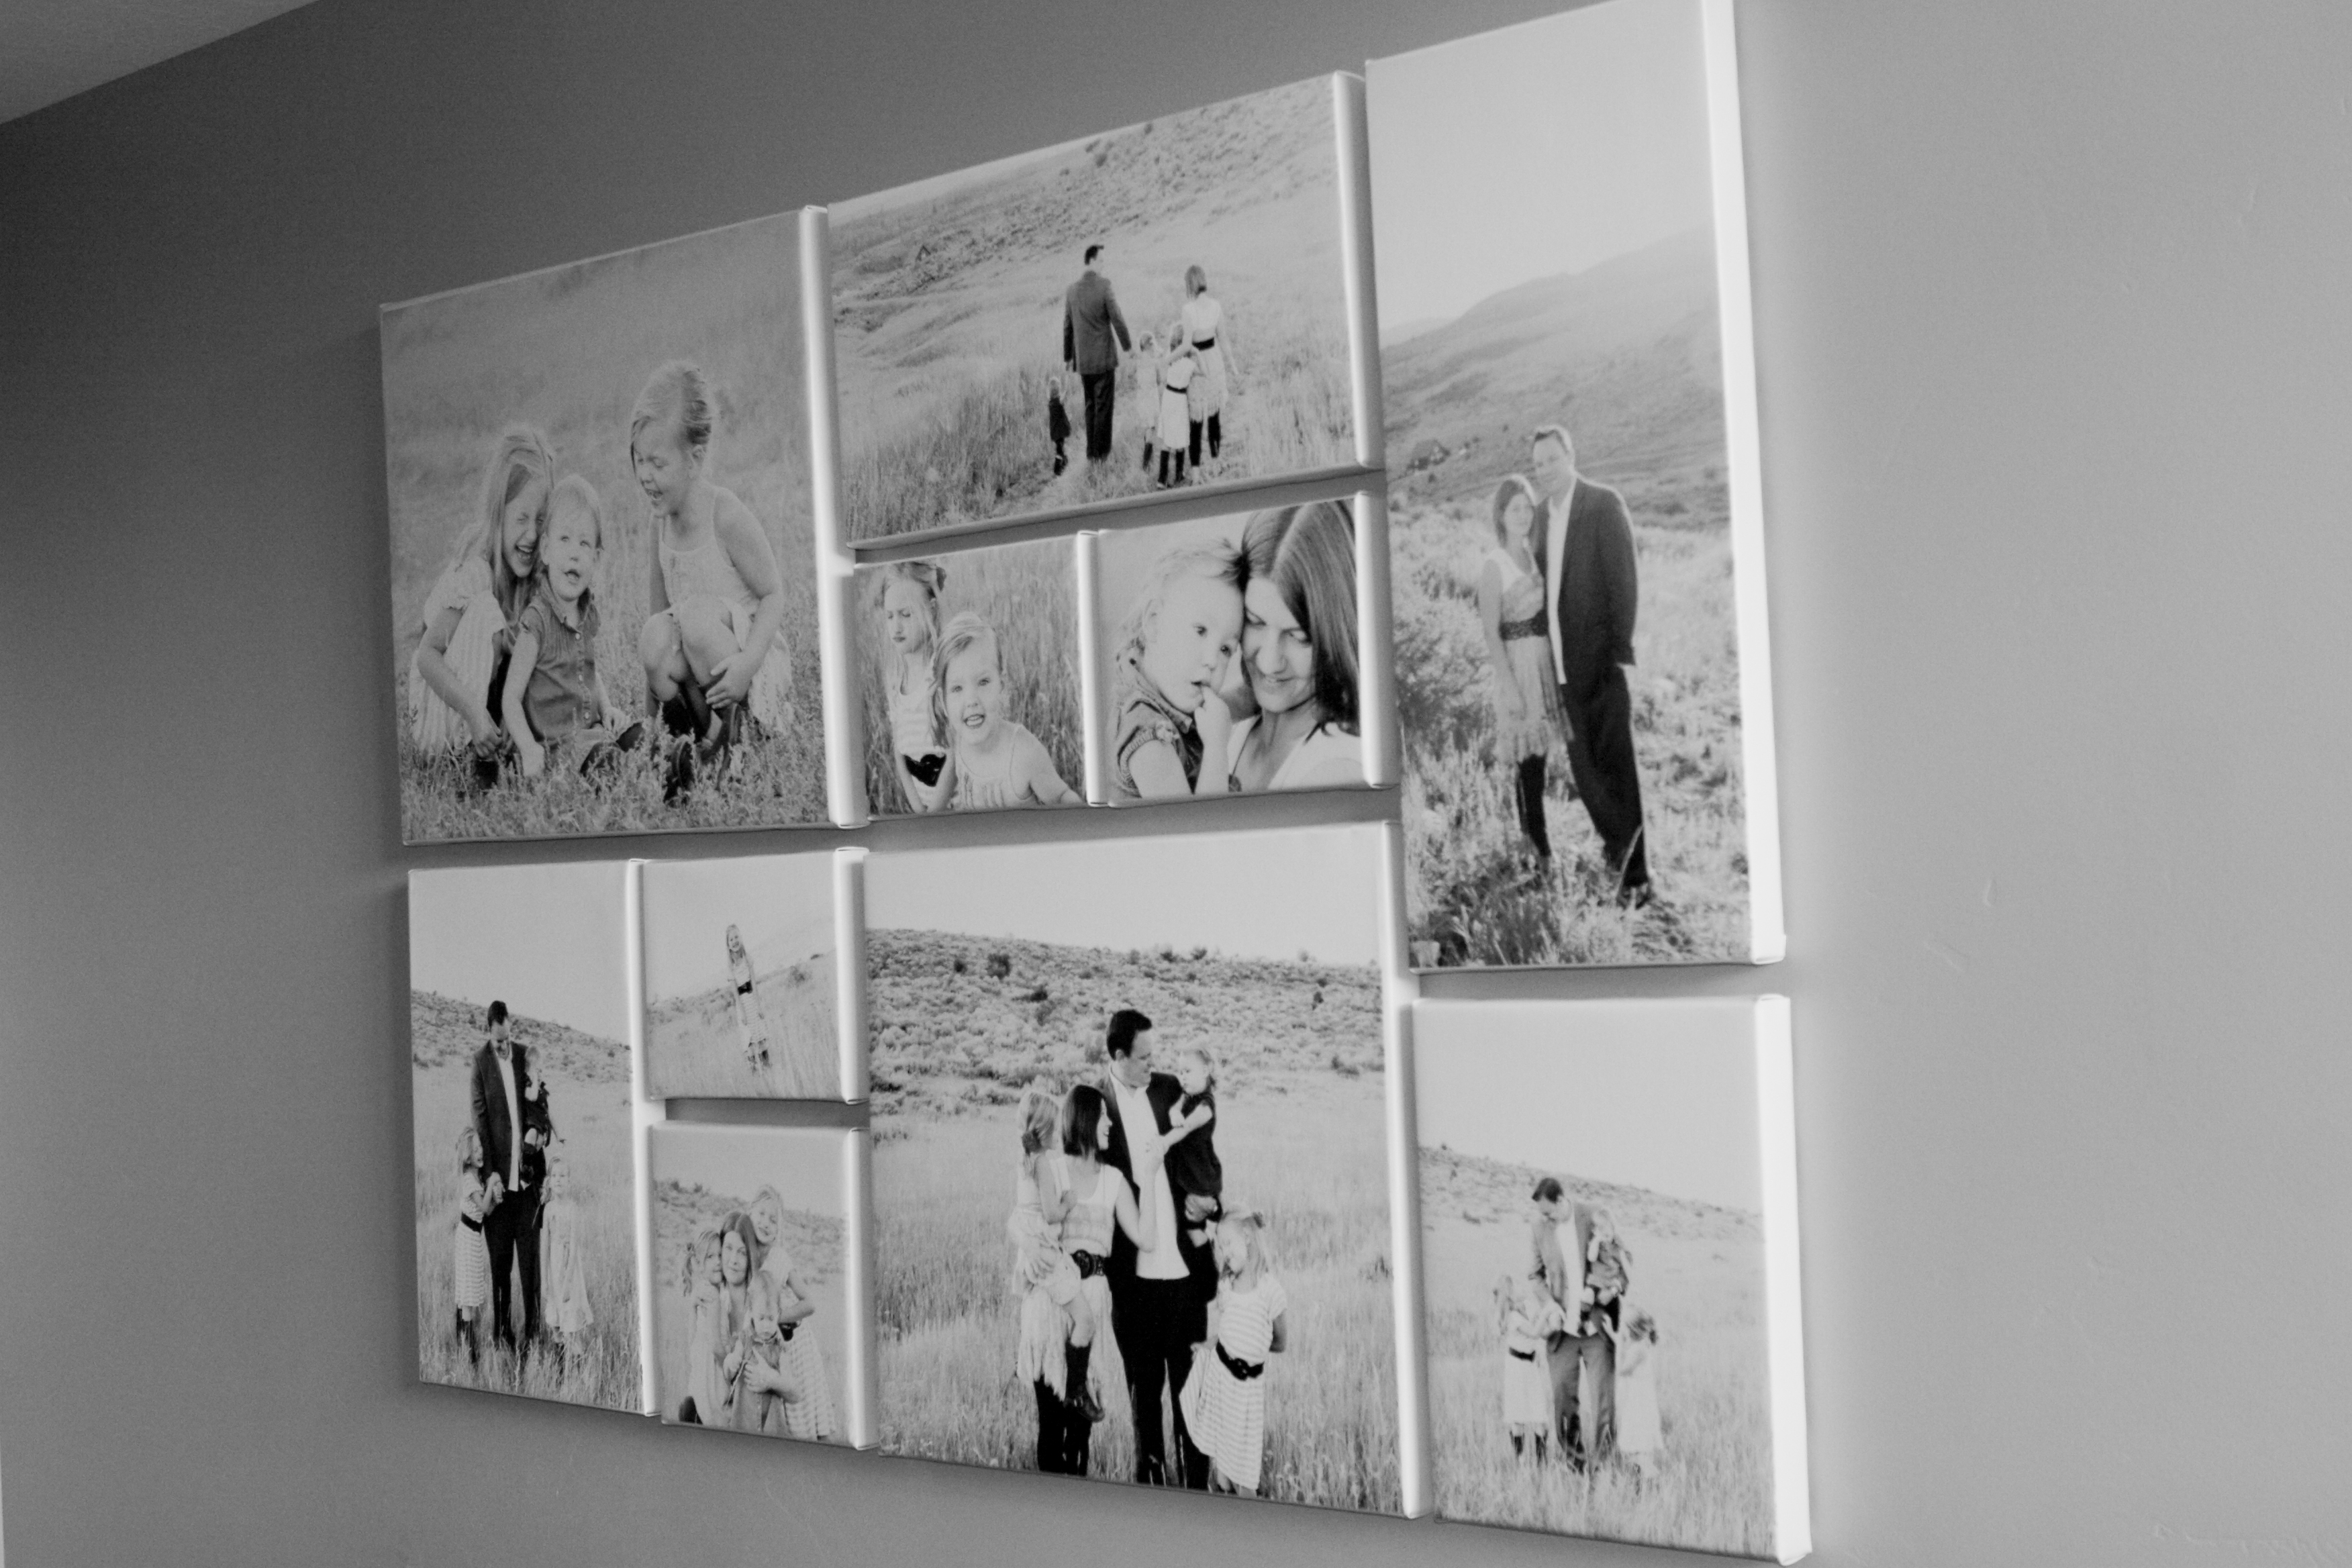 Project…canvas Wall | Wall Collage, Photo Wall And Collage Within Current Photography Canvas Wall Art (View 10 of 15)